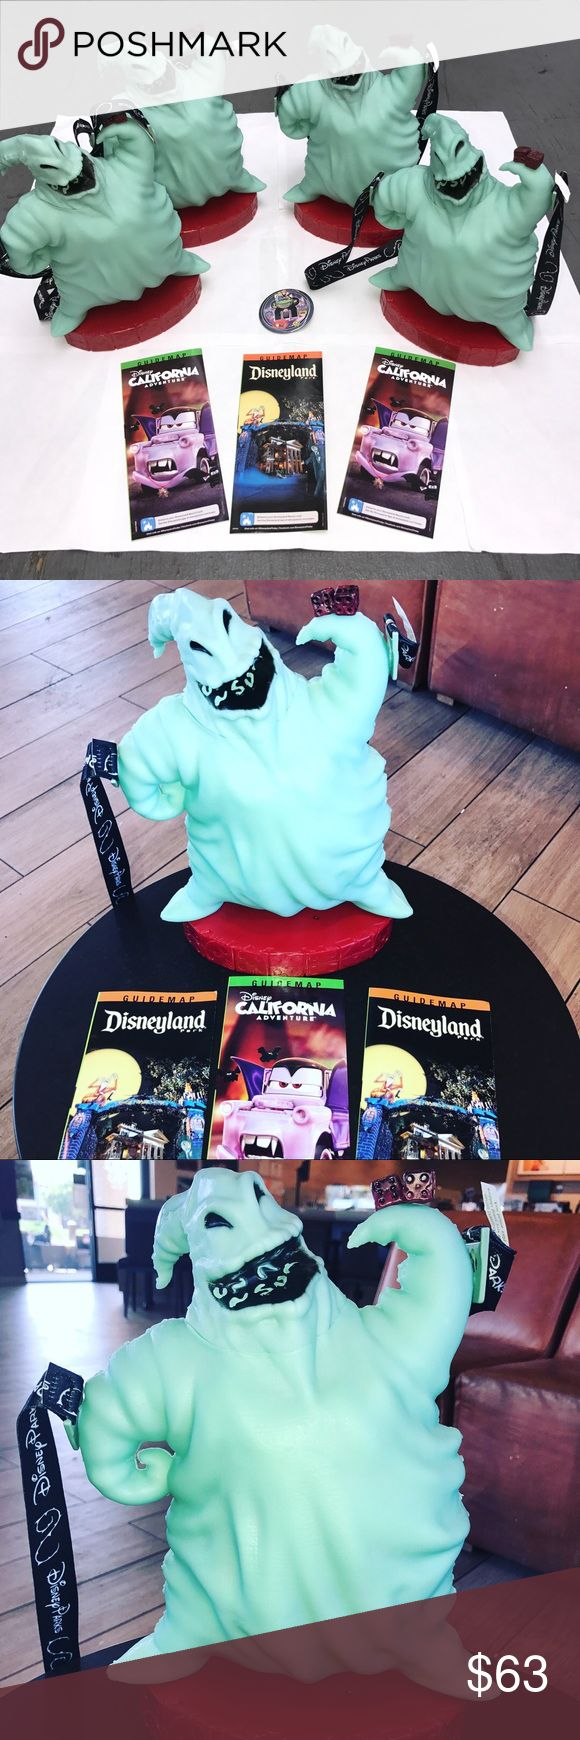 """DISNEYLAND (2) """"OOGIE BOOGIE POPCORN BUCKETS"""" DEAL New (2) DISNEYLAND (2017) NIGHTMARE BEFORE CHRISTMAS EXCLUSIVE """"OOGIE BOOGIE COLLECTIBLE POPCORN BUCKETS"""" !! ...THESE COOL """"OOGIE BOOGIE POPCORN BUCKETS"""" ARE THE MOST POPULAR AND """"HIGHEST SELLING"""" COLLECTIBLE ITEM FOR THE ENTIRE YEAR OF (2017) AT """"DISNEYLAND"""" ...... MANY PEOPLE WAITED HOURS IN LINE JUST TO BUY THESE POPCORN BUCKETS ... AND THEY ARE STILL SELLING AT """"VERY HIGH PRICES"""" ON ( EBAY - AMAZON - ETSY ) ... GET YOURS TODAY BECAUSE…"""